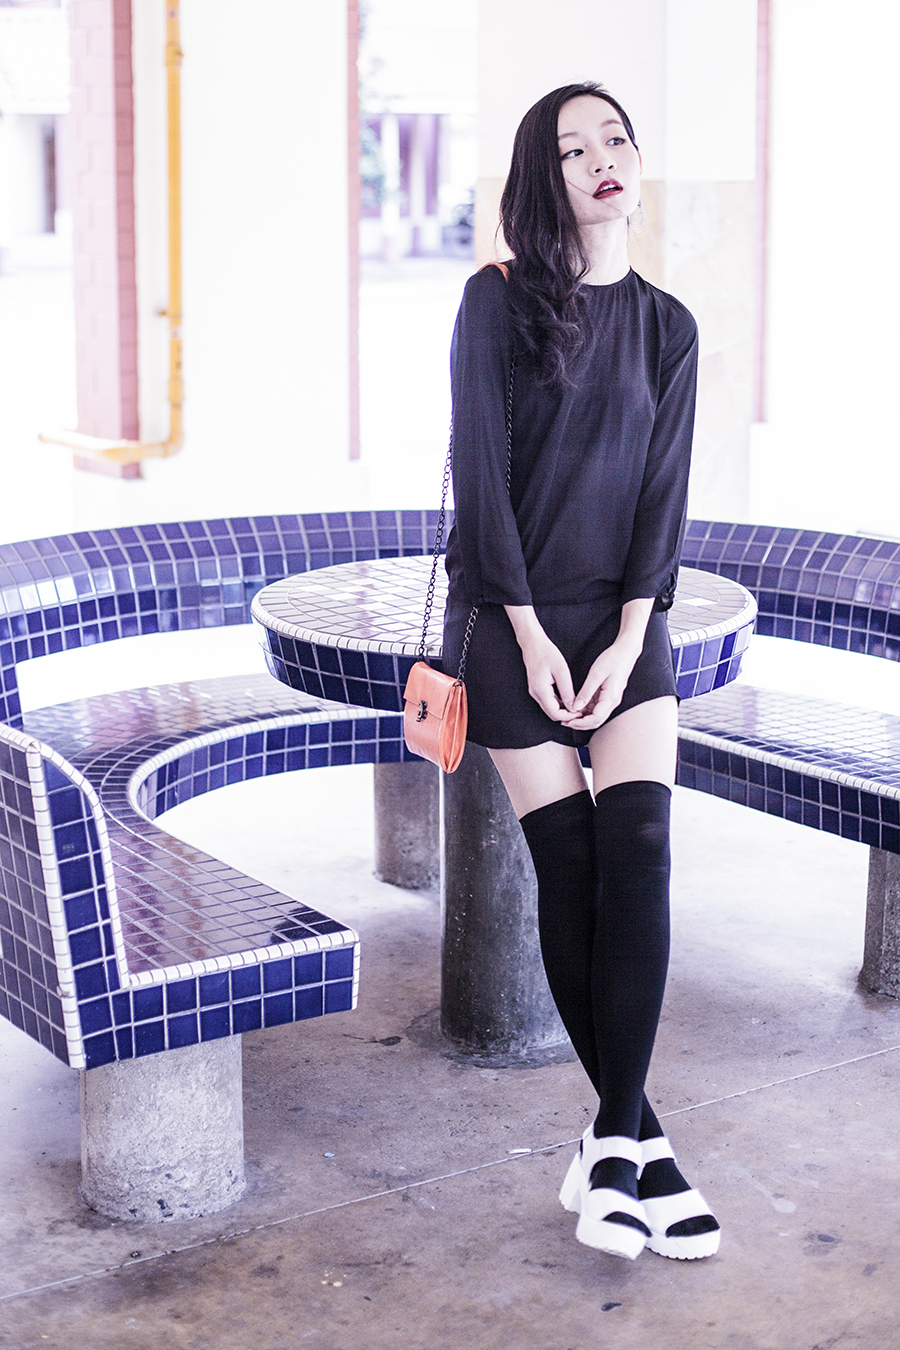 We Love Colors black thigh high stockings, H&M black open back chiffon tunic dress, Taobao white platform sandals, Steve Madden orange shoulder bag, silver hoop earrings.